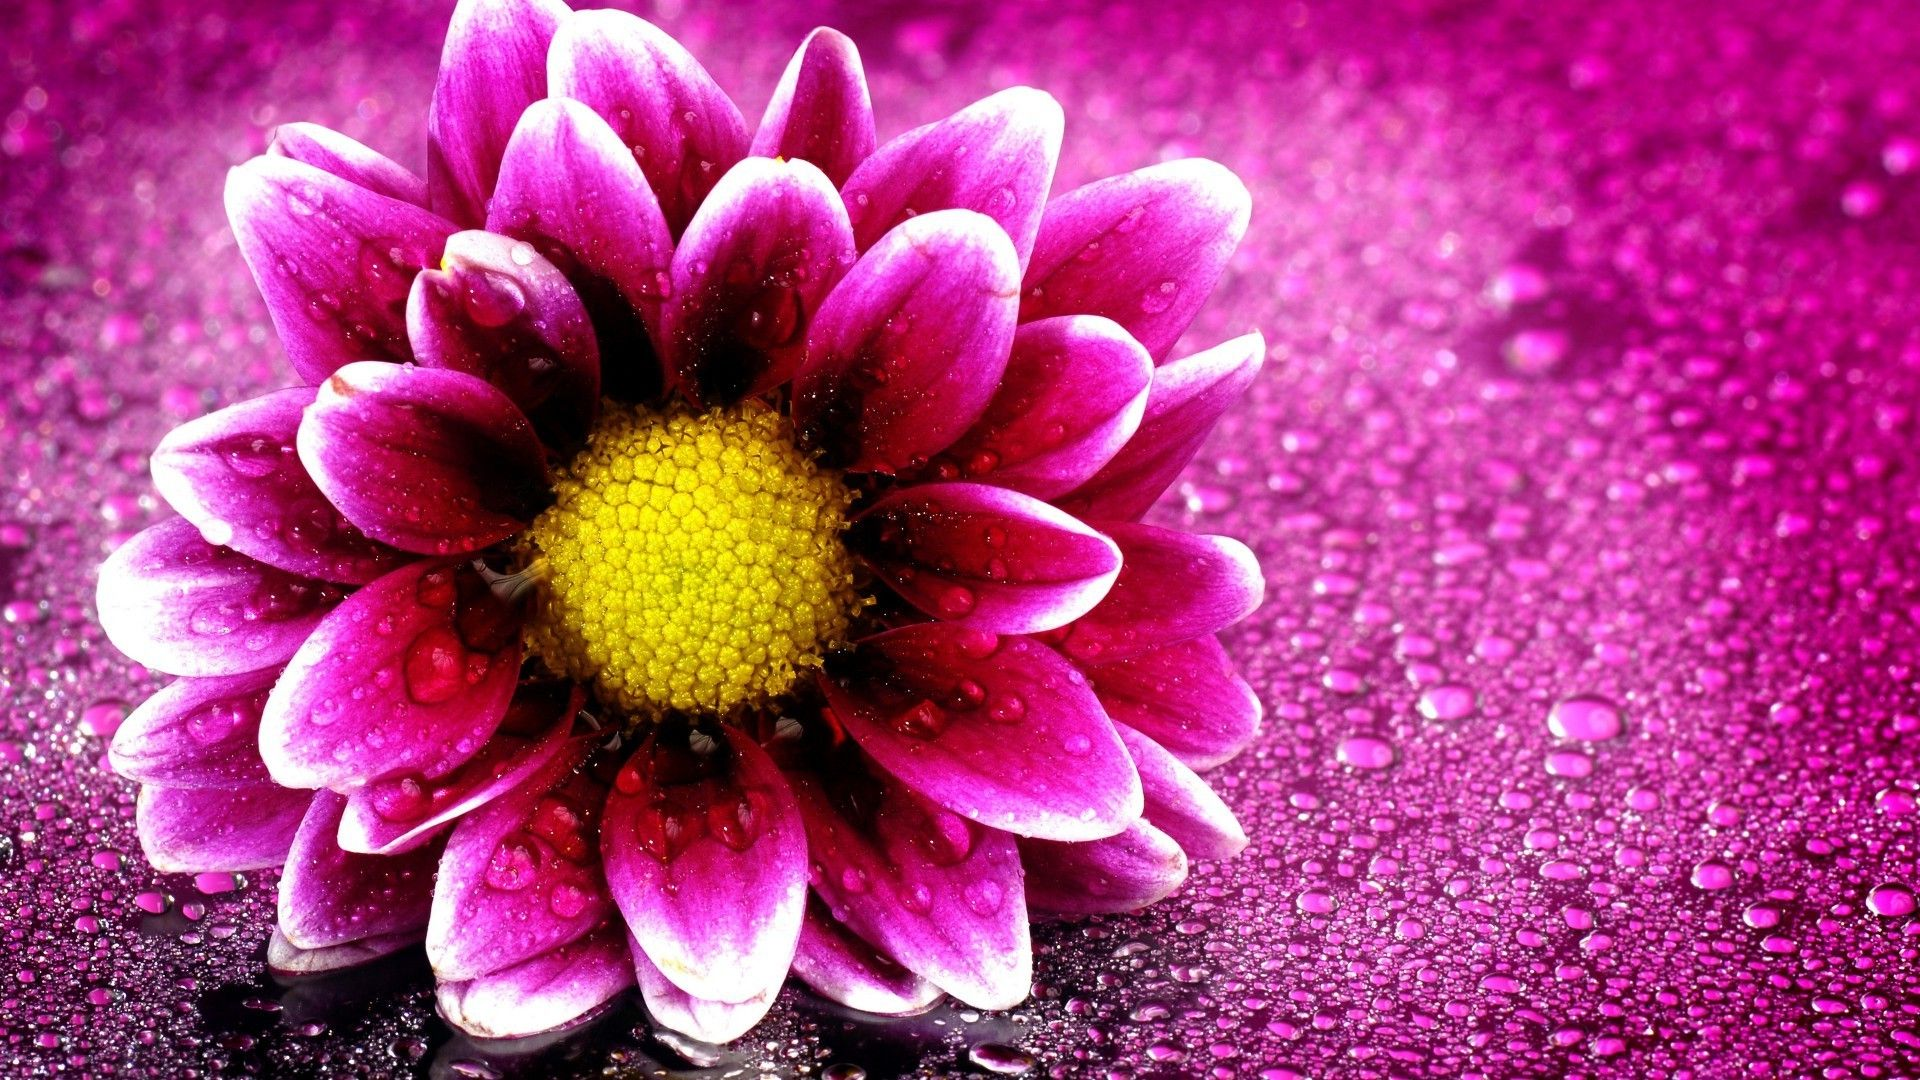 Most Beautiful Flowers wallpaper download